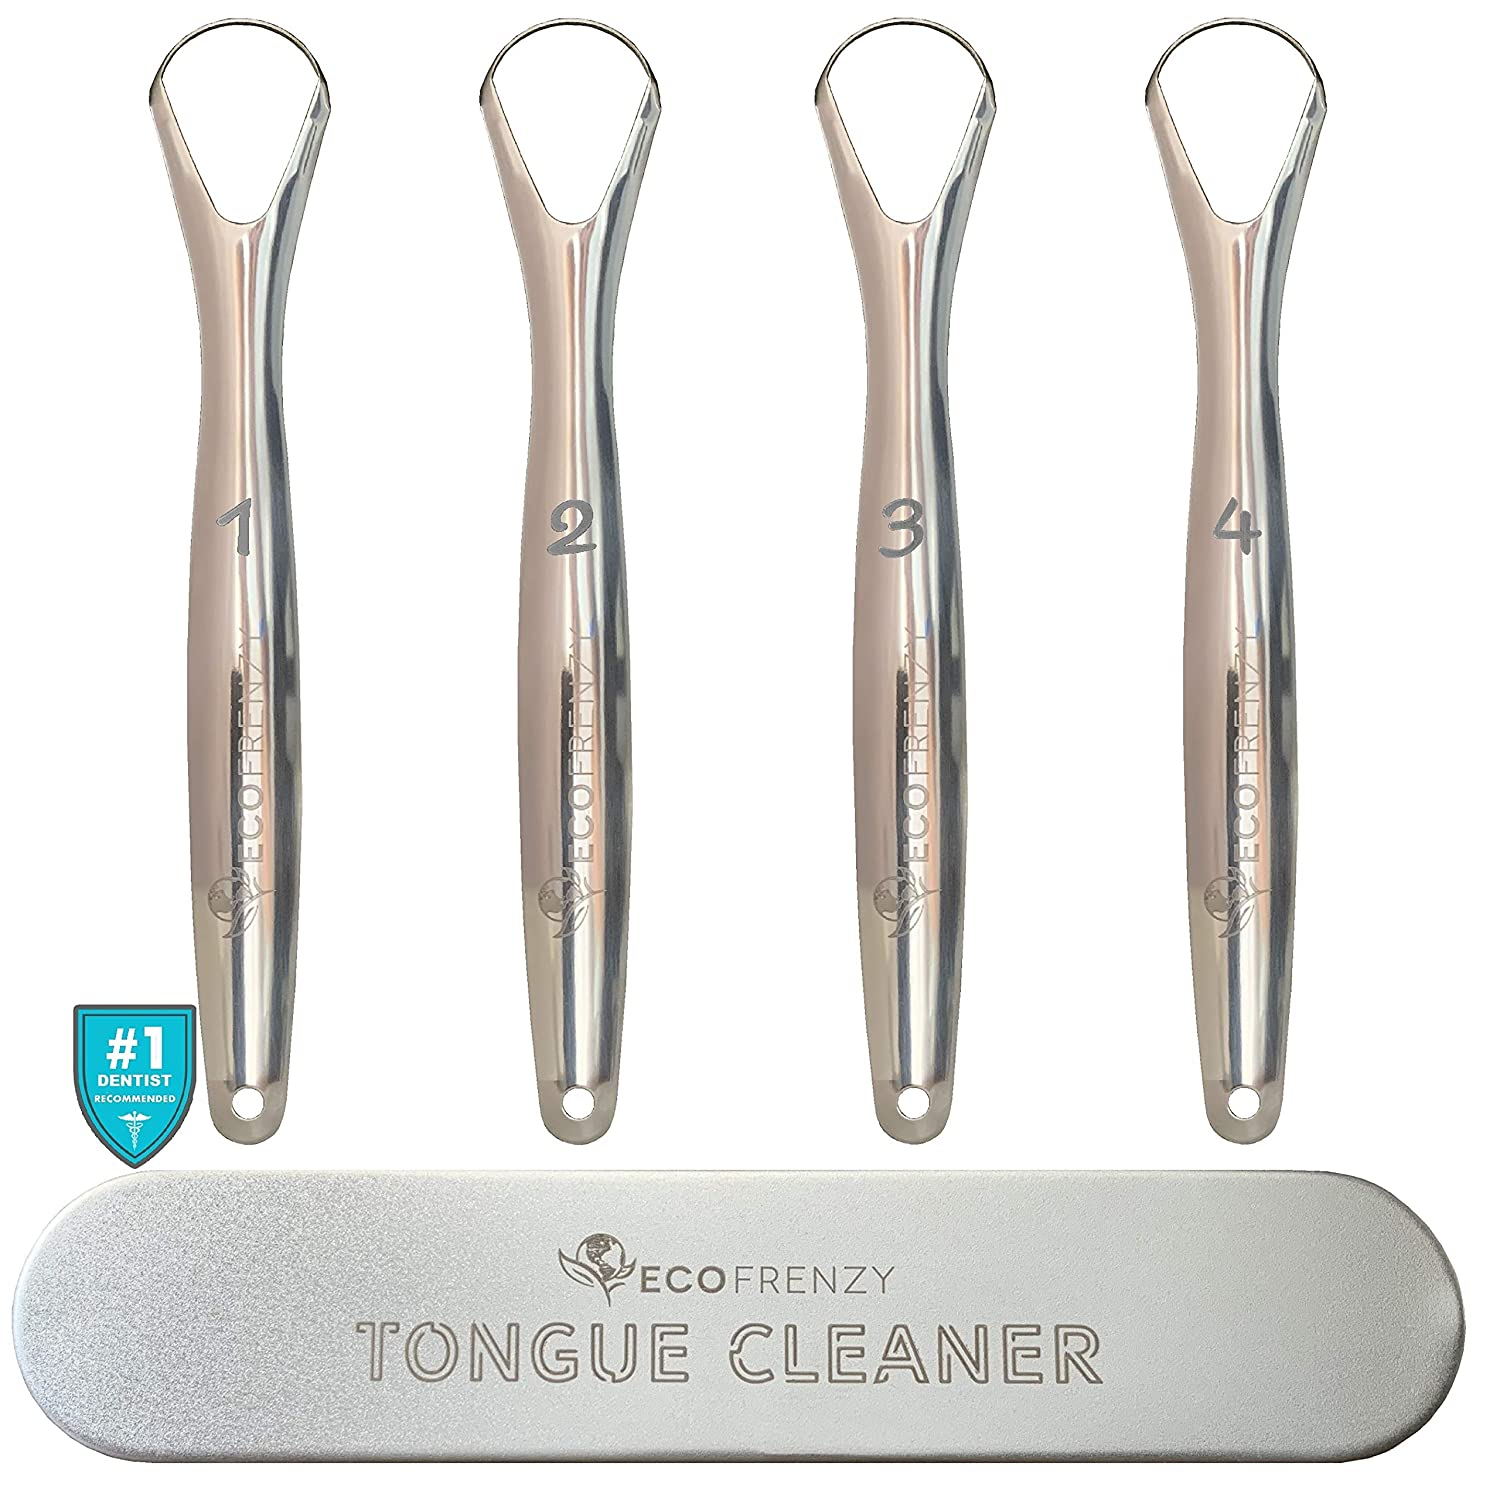 EcoFrenzy - Tongue Scraper (4-pack), Medical Grade Stainless Steel Tongue Cleaner. Individually Numbered. Includes Free Tin Metal Travel Case.